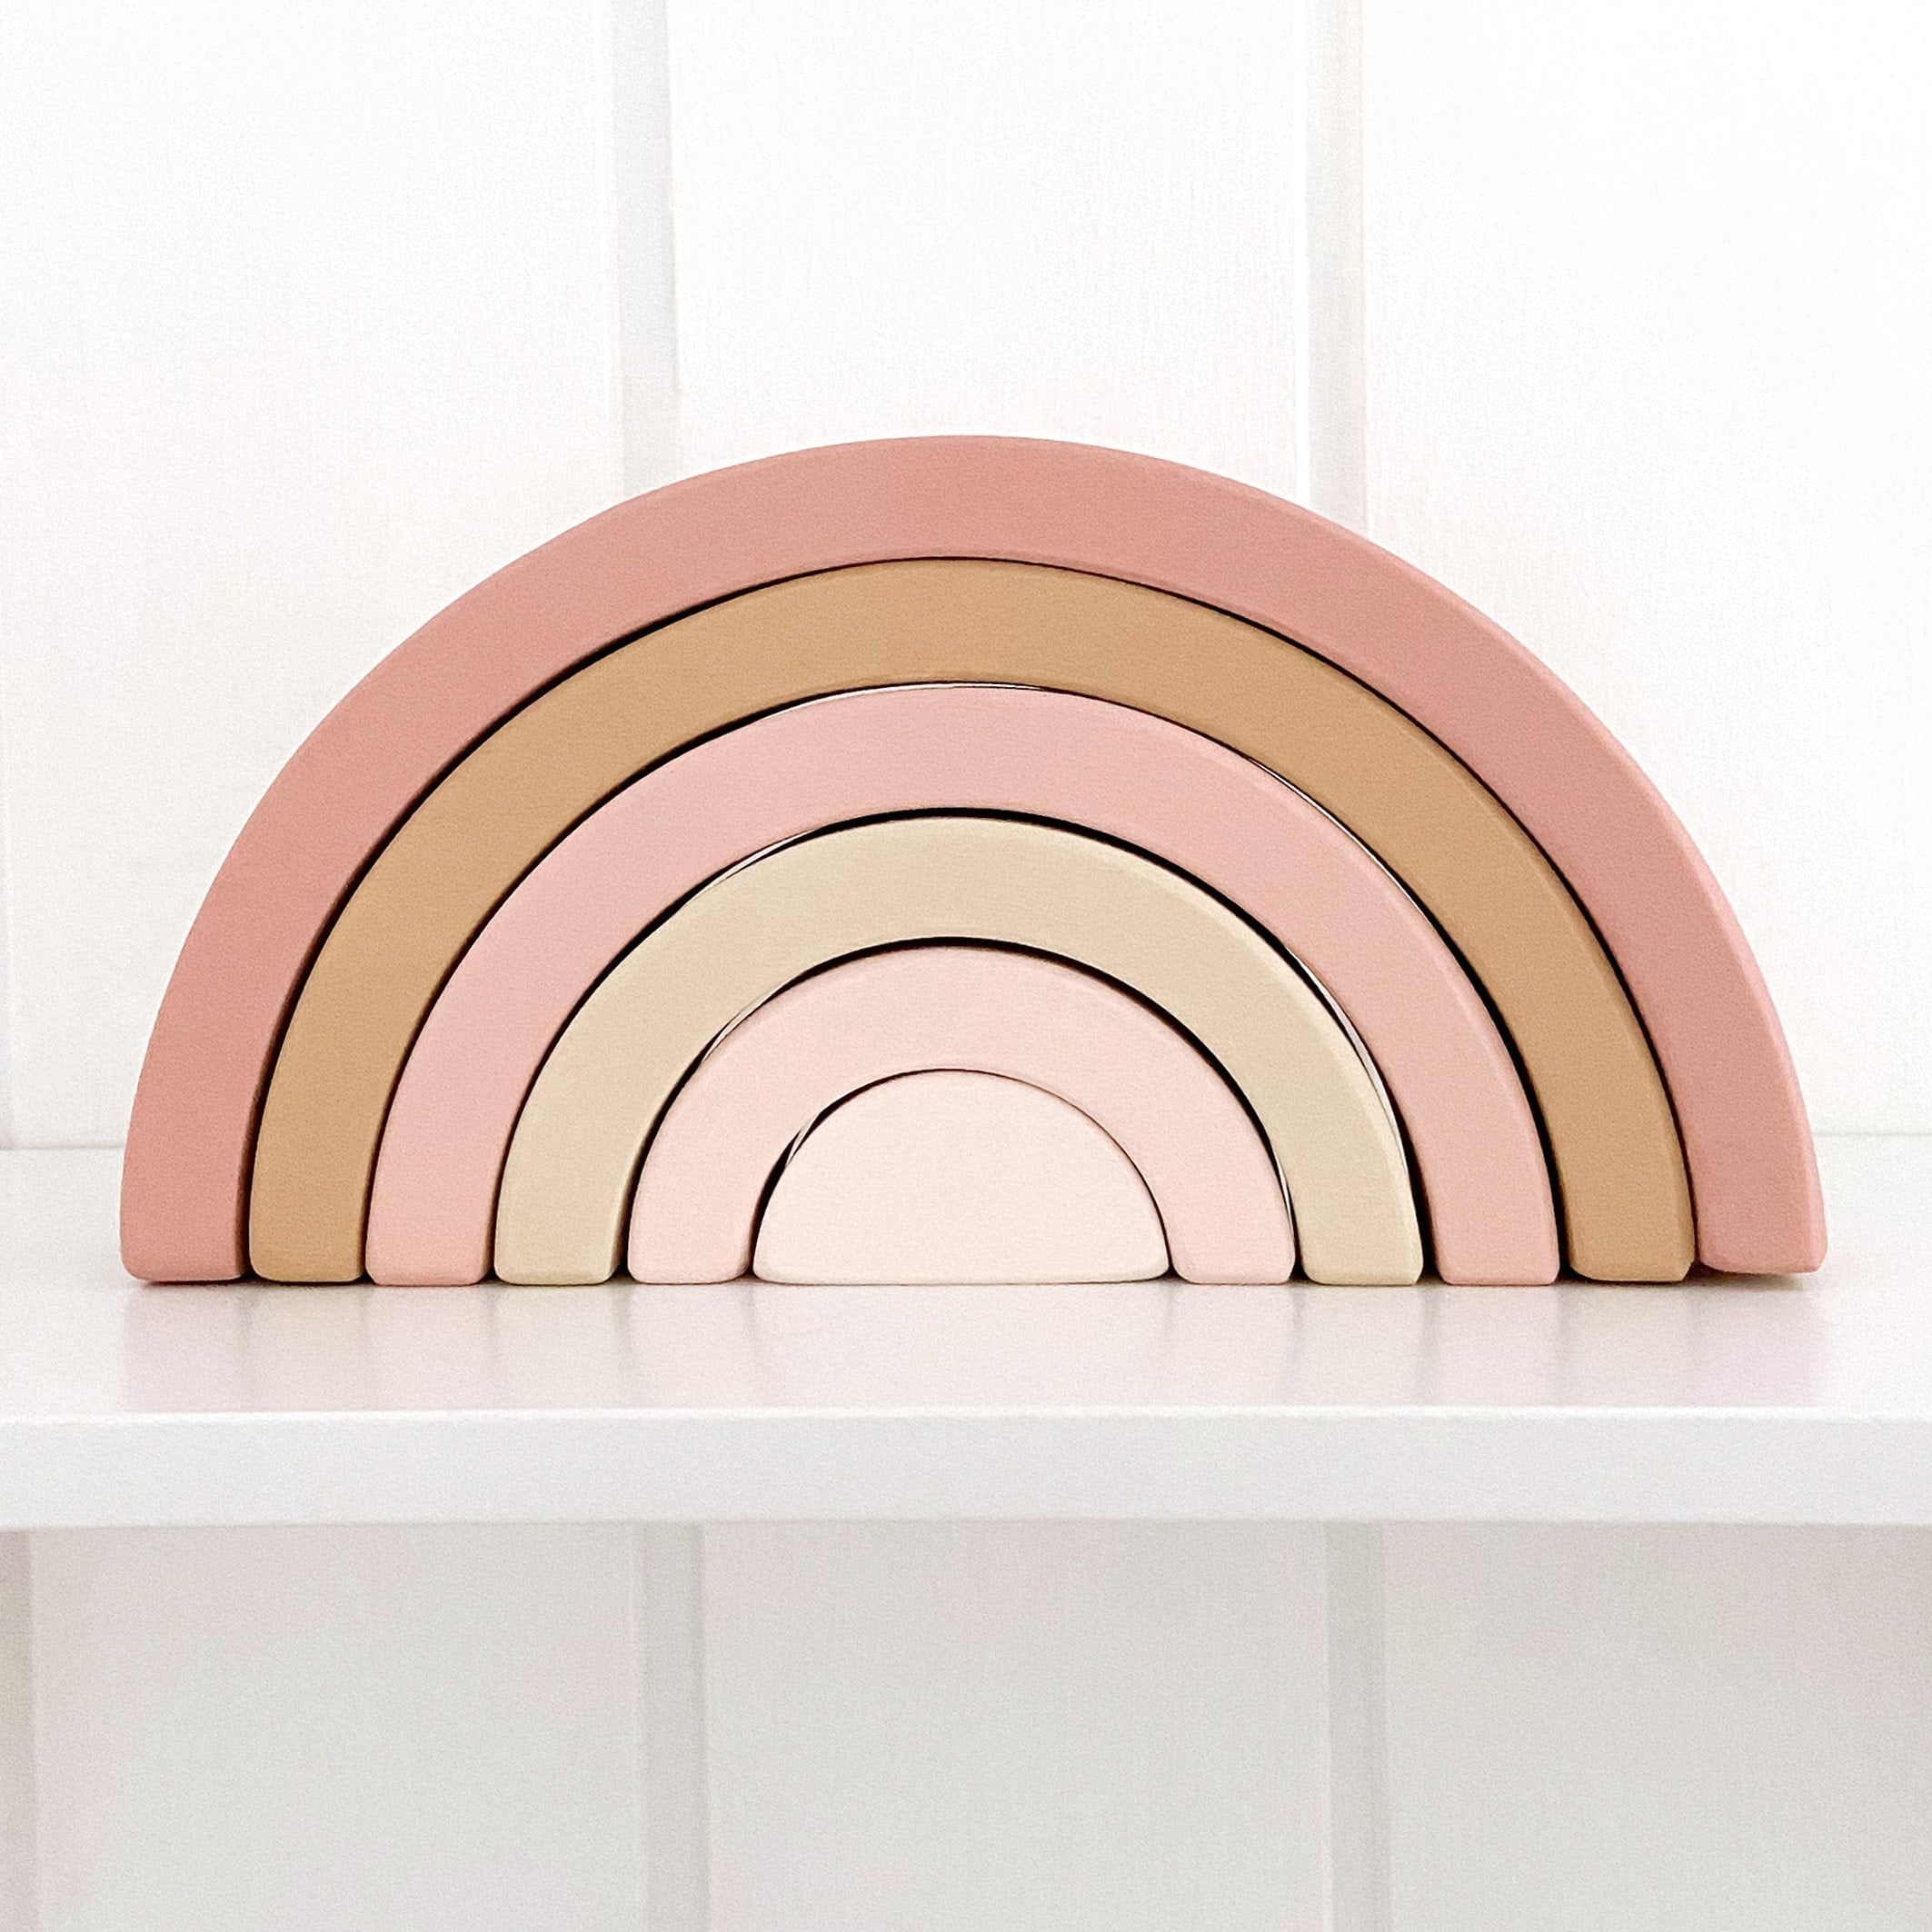 Boho wooden rainbow toy in pink and beige. Rainbow is sitting on a nursery shelf